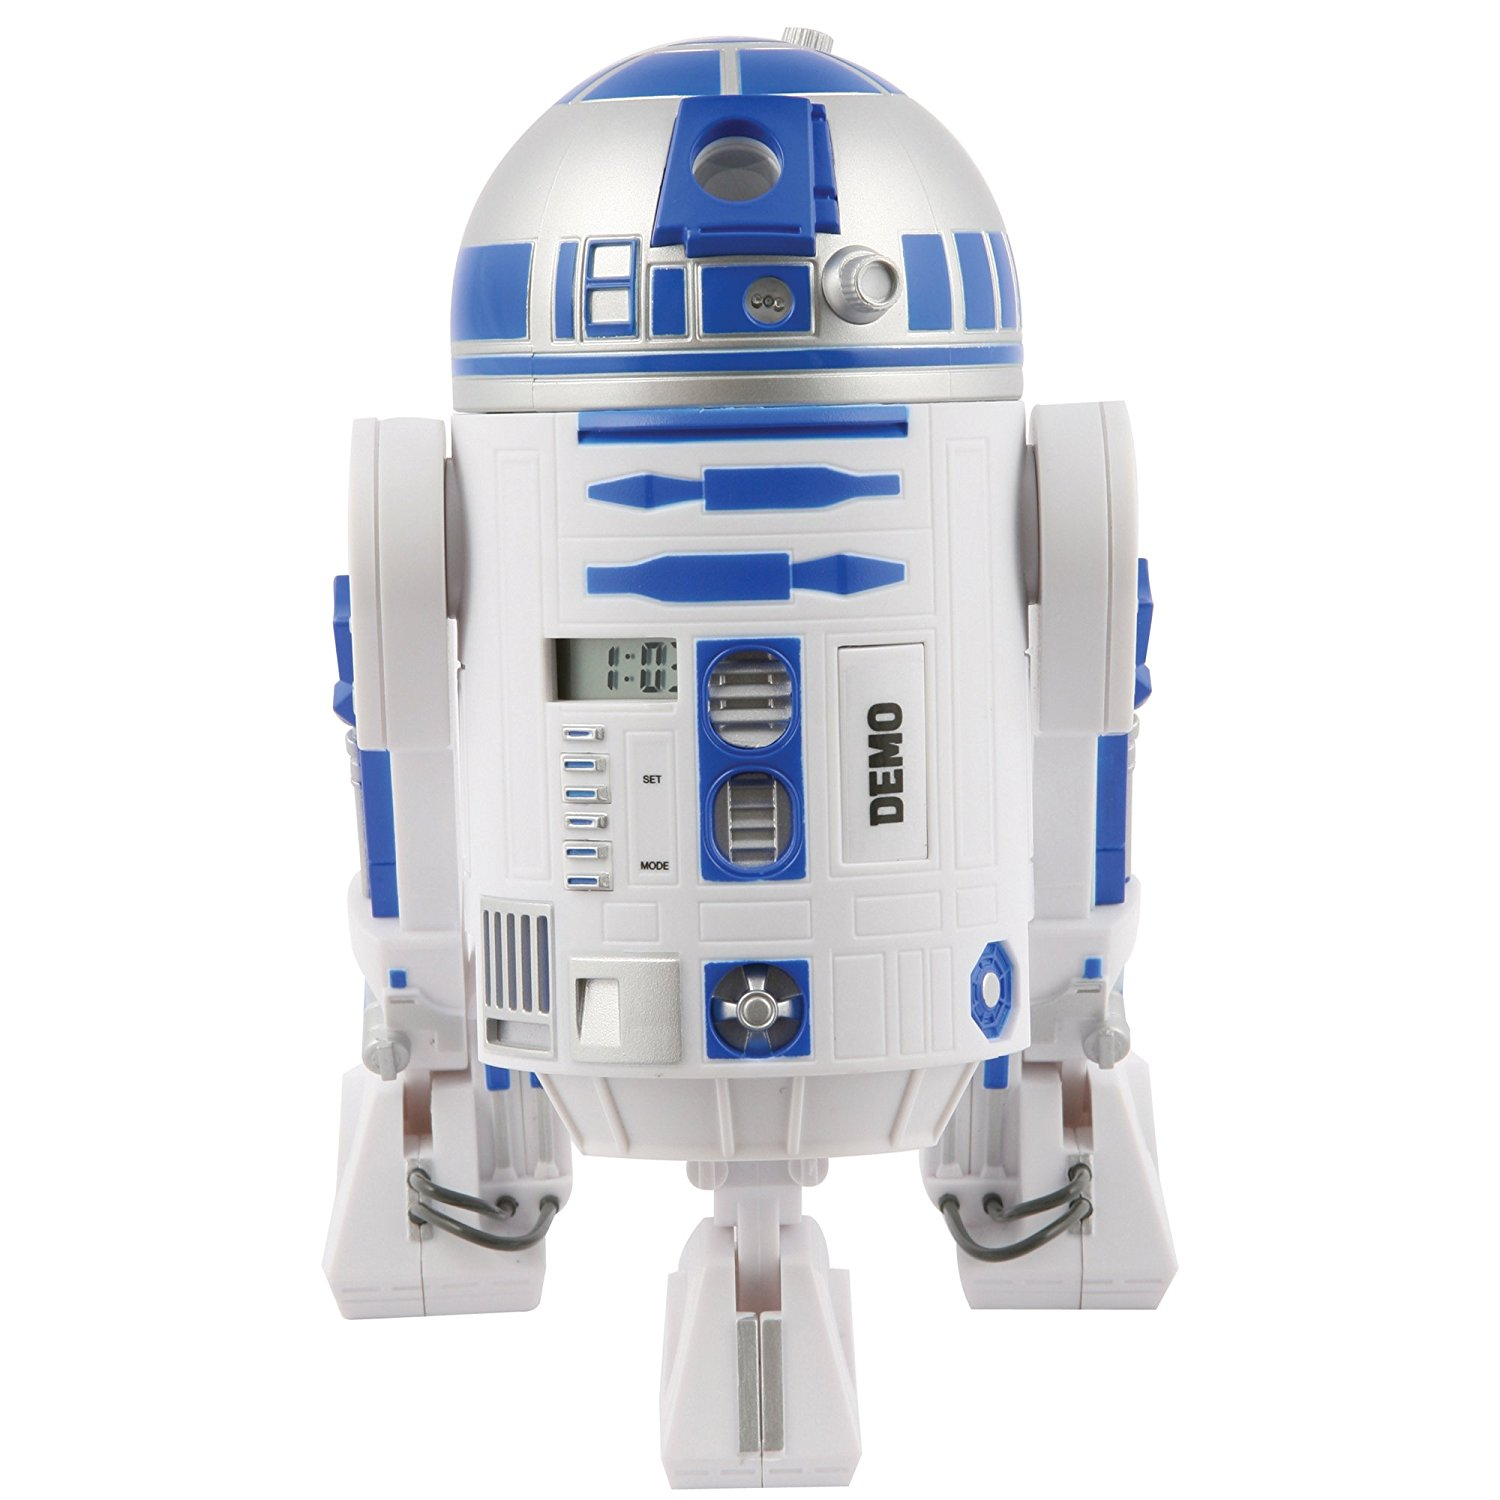 The front of a R2D2 unit rutned into an alarm clock